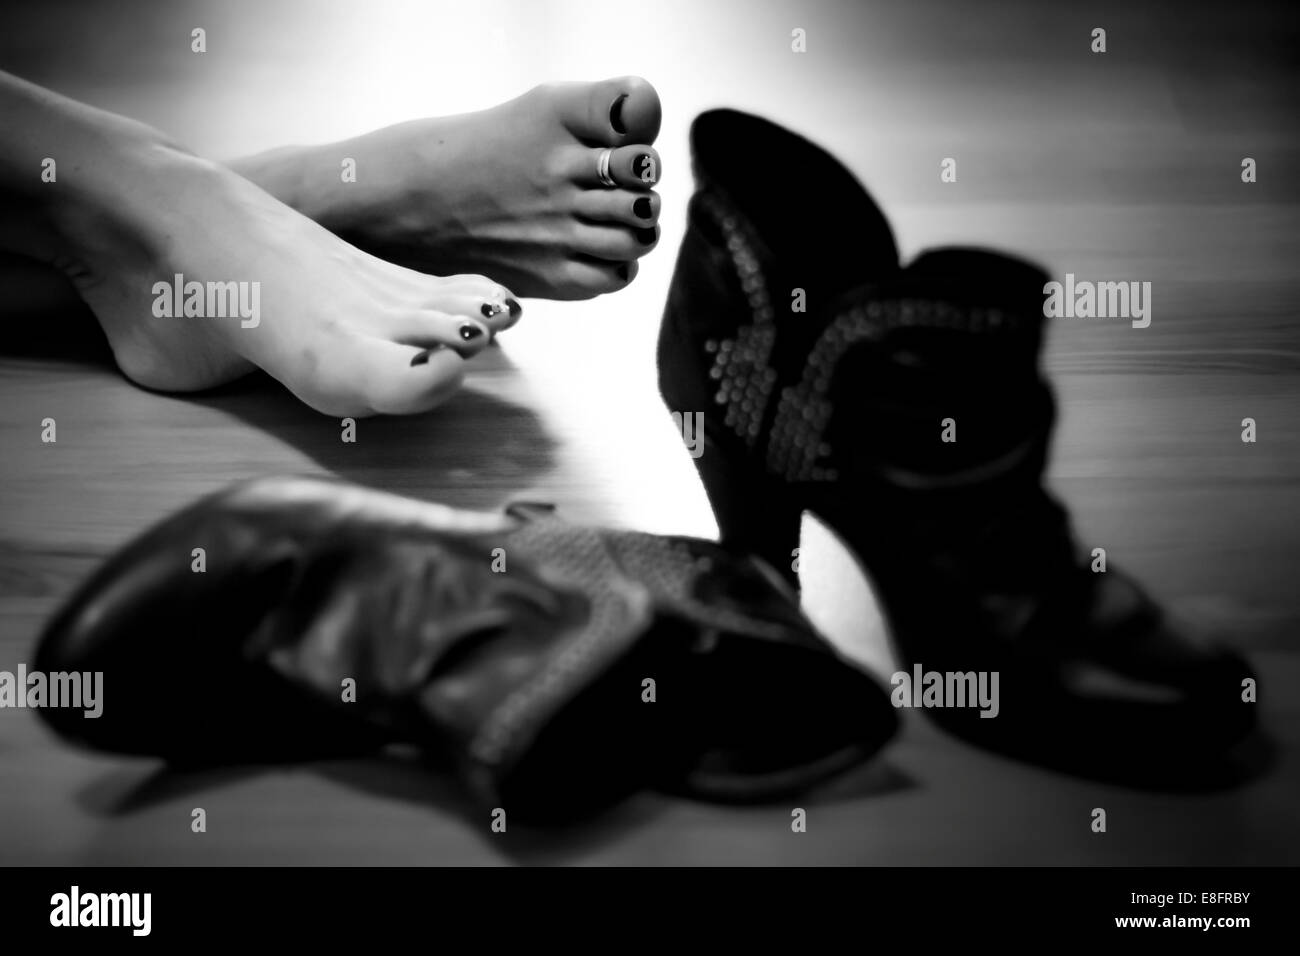 USA, Louisiana, Orleans Parish, New Orleans, Bare feet and shoes - Stock Image